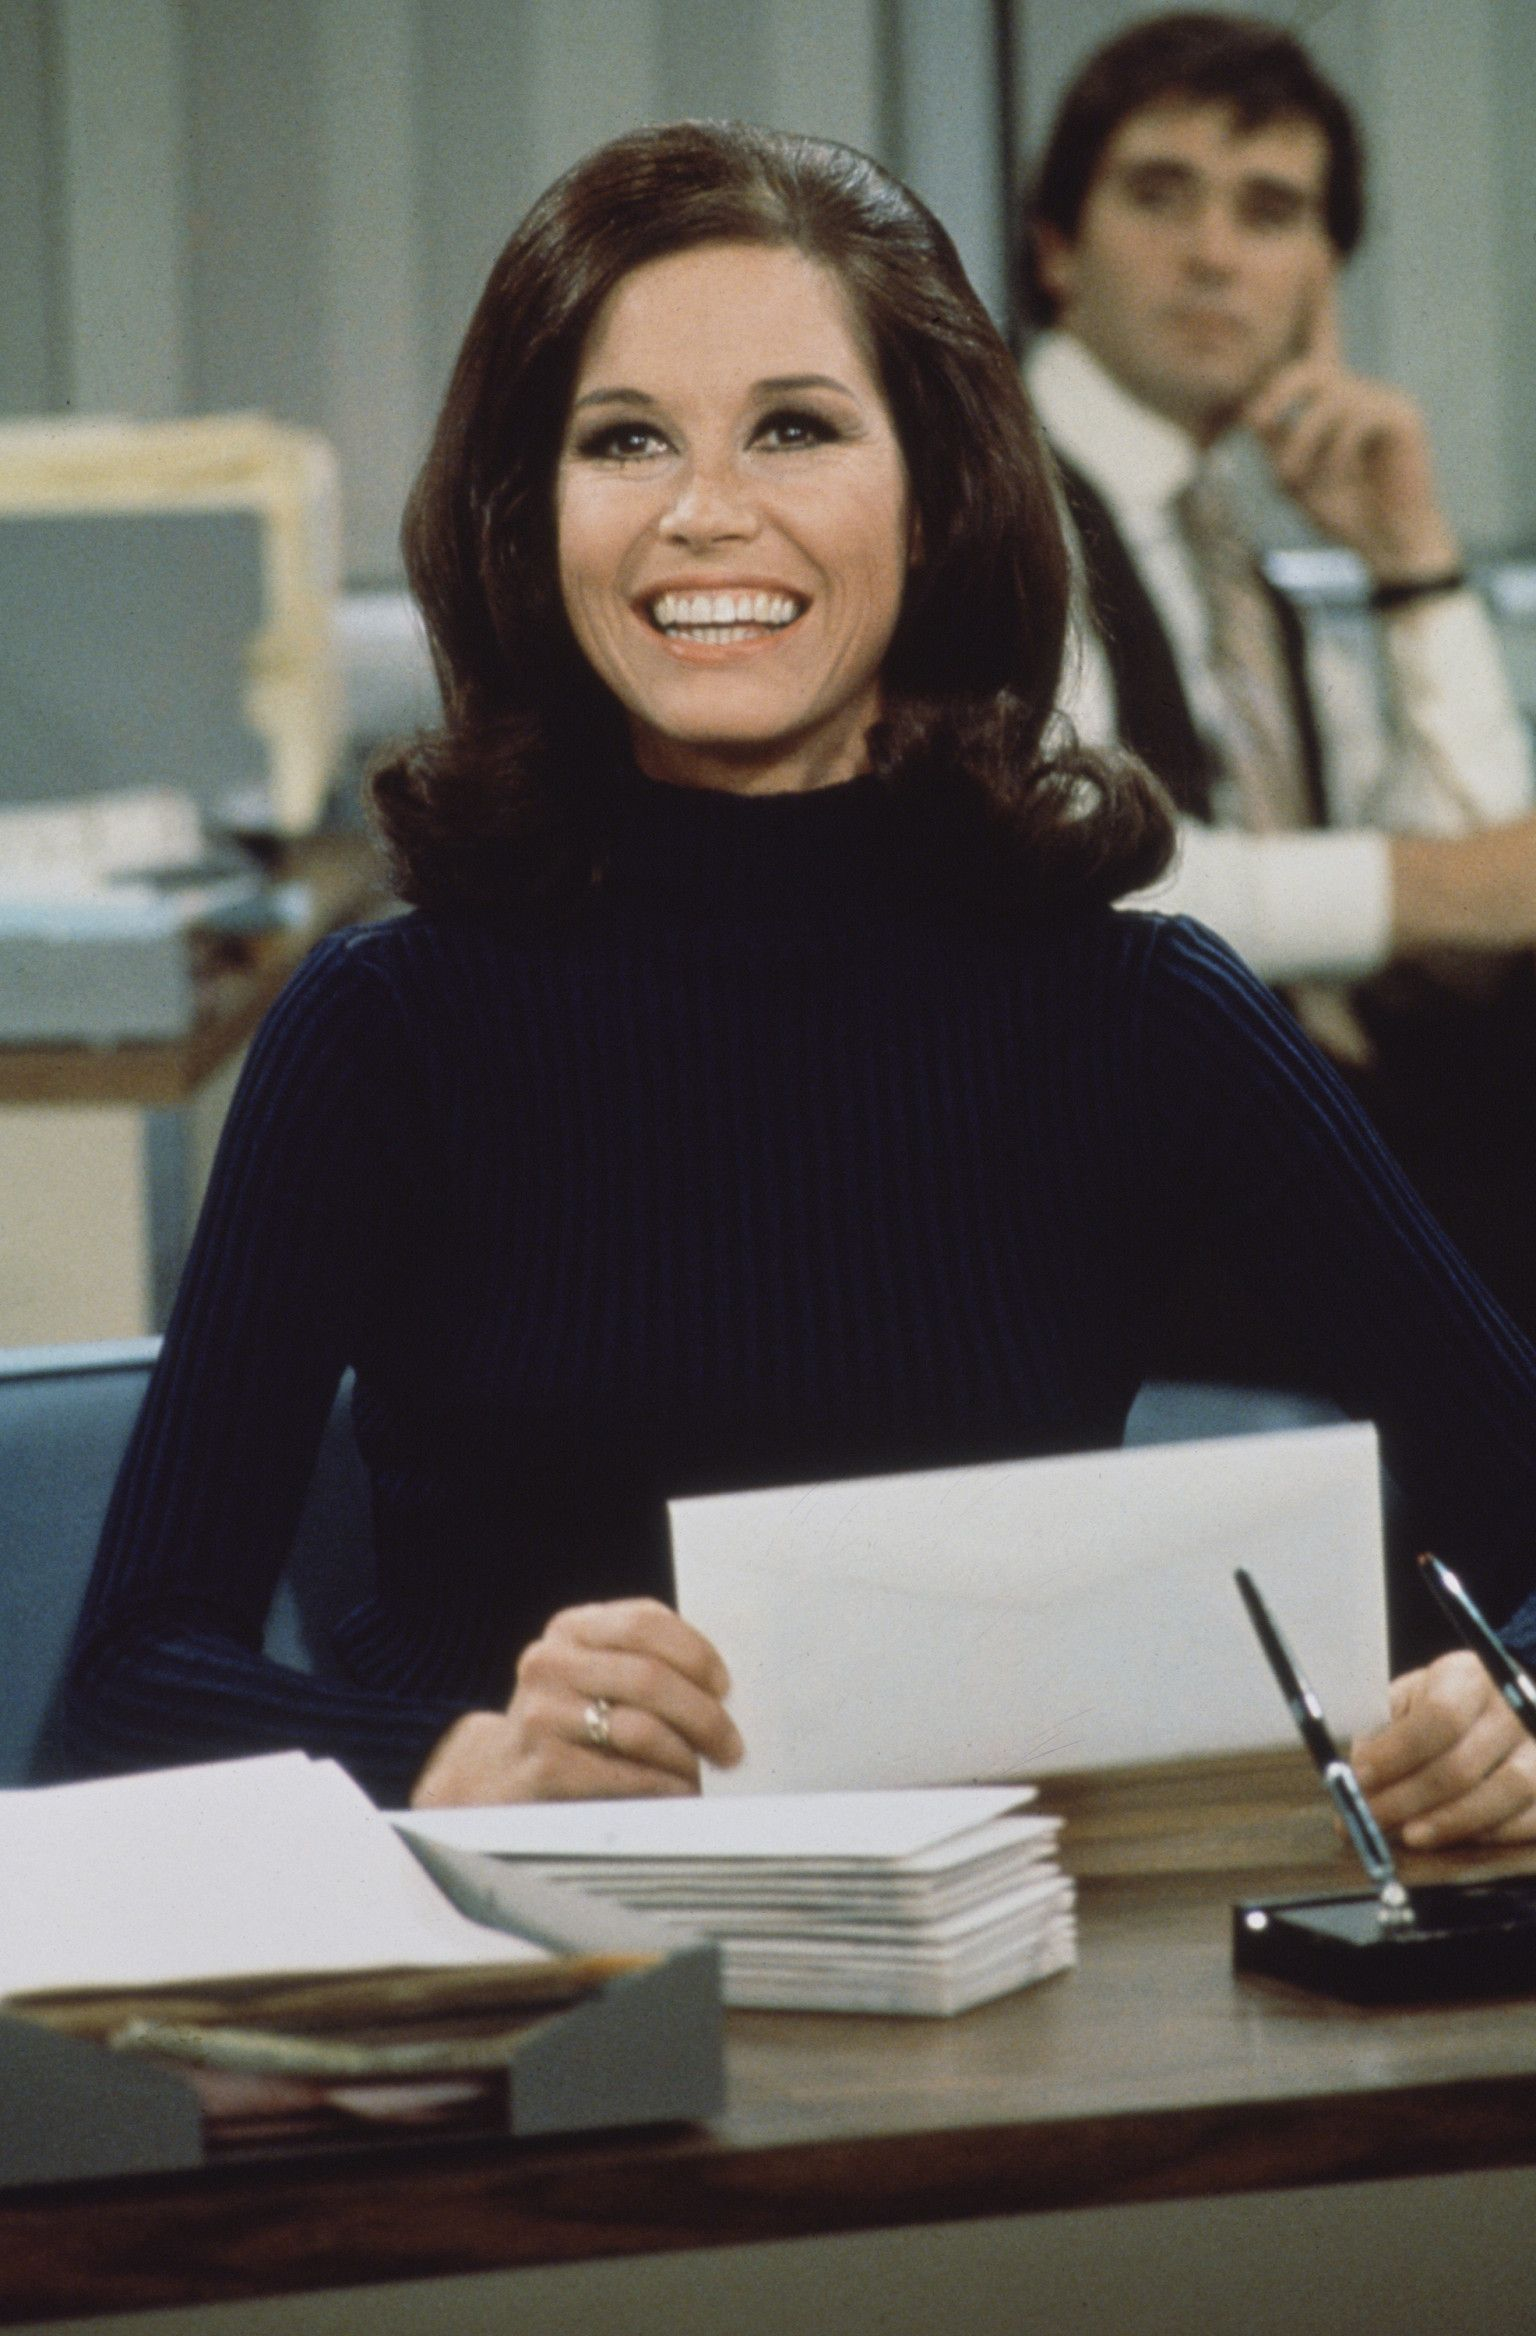 Women share how mary tyler moore shaped culture impacted social change cbs local - 1970 1977 Career Gal Mary Tyler Moore S Character A Single Working Woman In Her Who Wasn T Desperate To Settle Down With A Fella Offered American